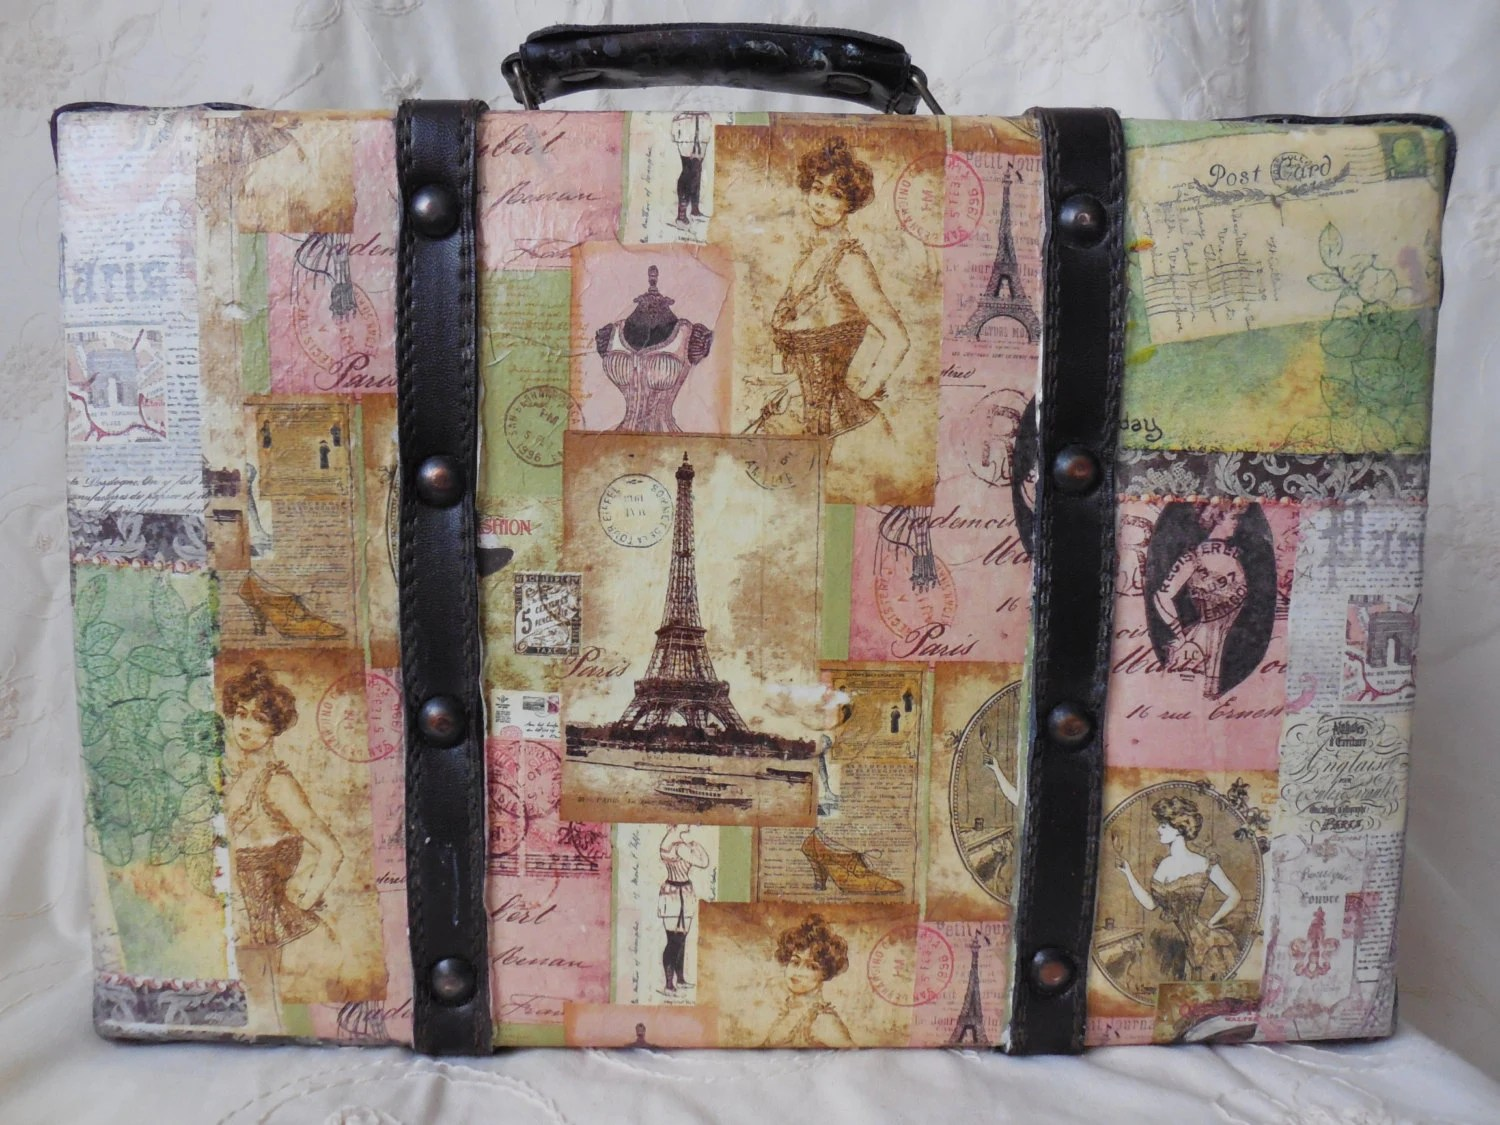 Vintage Decorative Suitcases Altered Upcycled Small Decorative Suitcase Vintage Style Paris